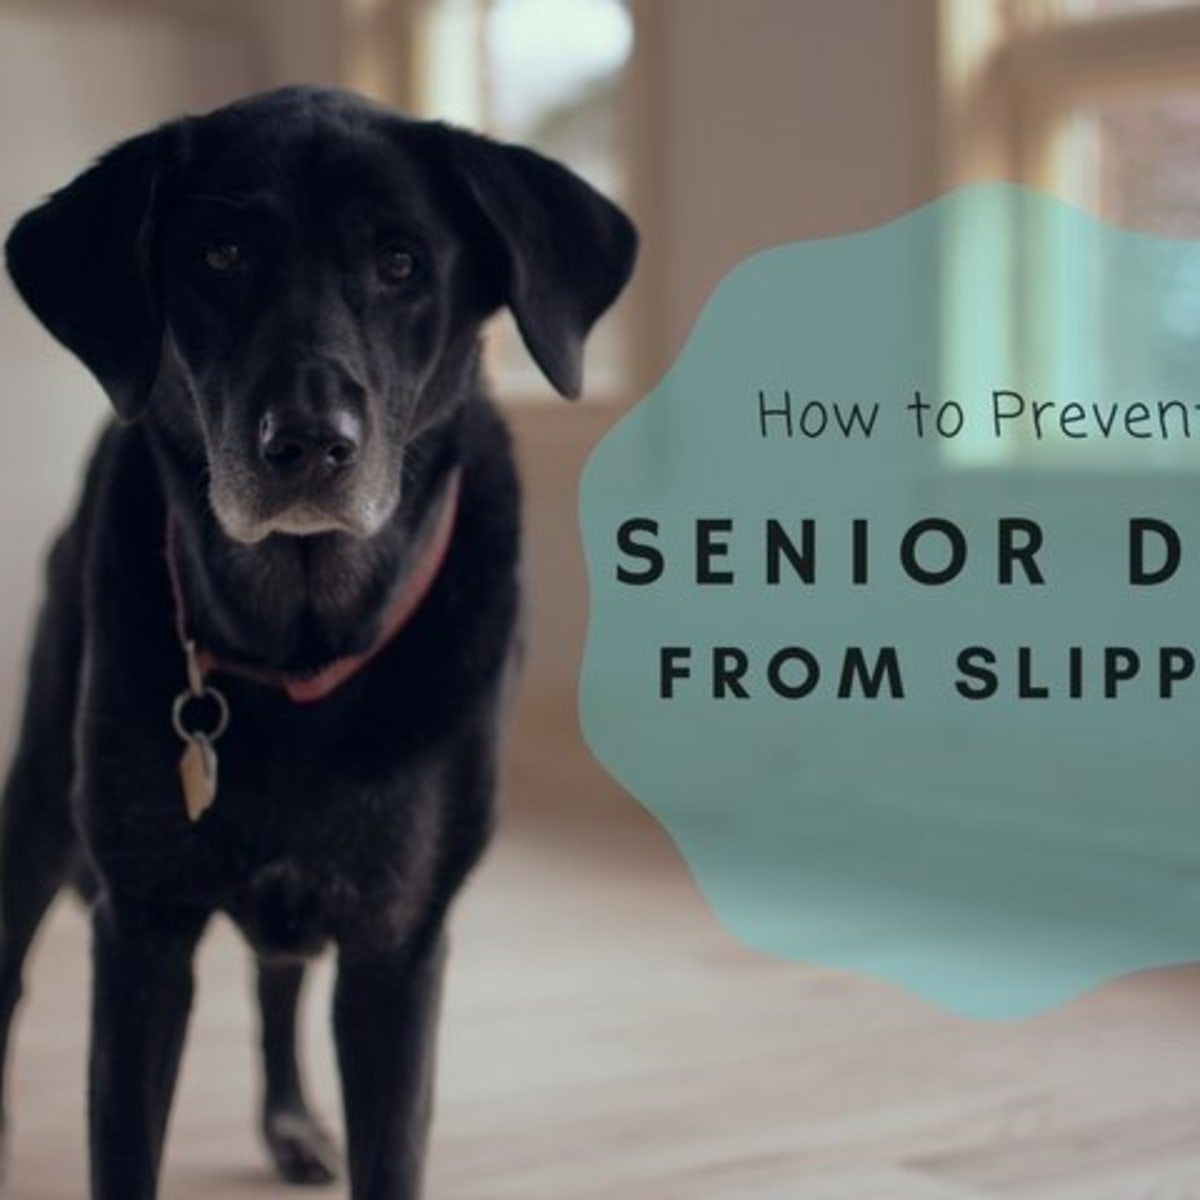 15 Ways To Keep An Old Dog From Slipping On The Floor Pethelpful By Fellow Animal And Experts